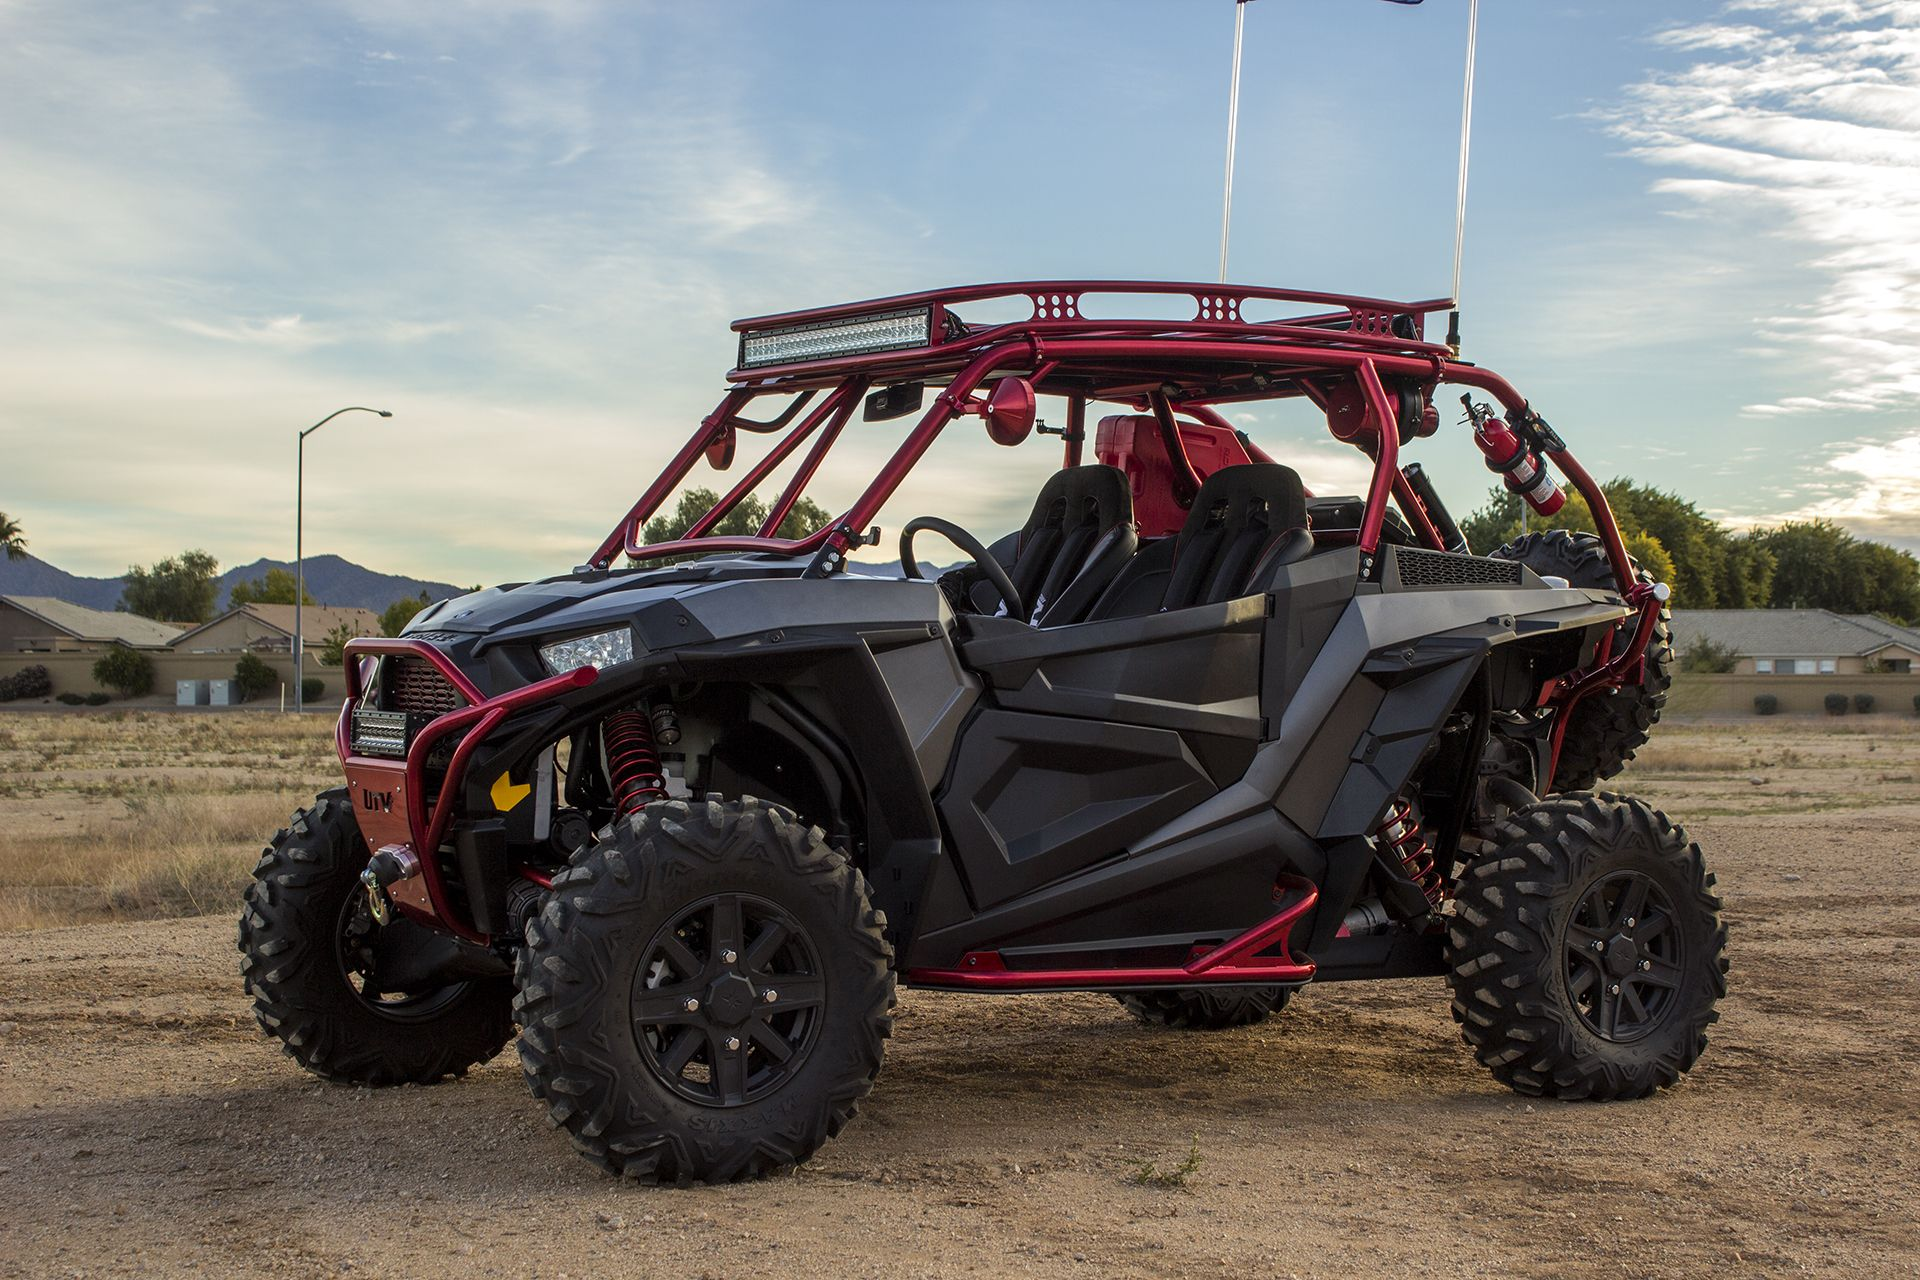 Steve S Expedition Rzr Xp 1000 By Utv Inc Polaris Rzr